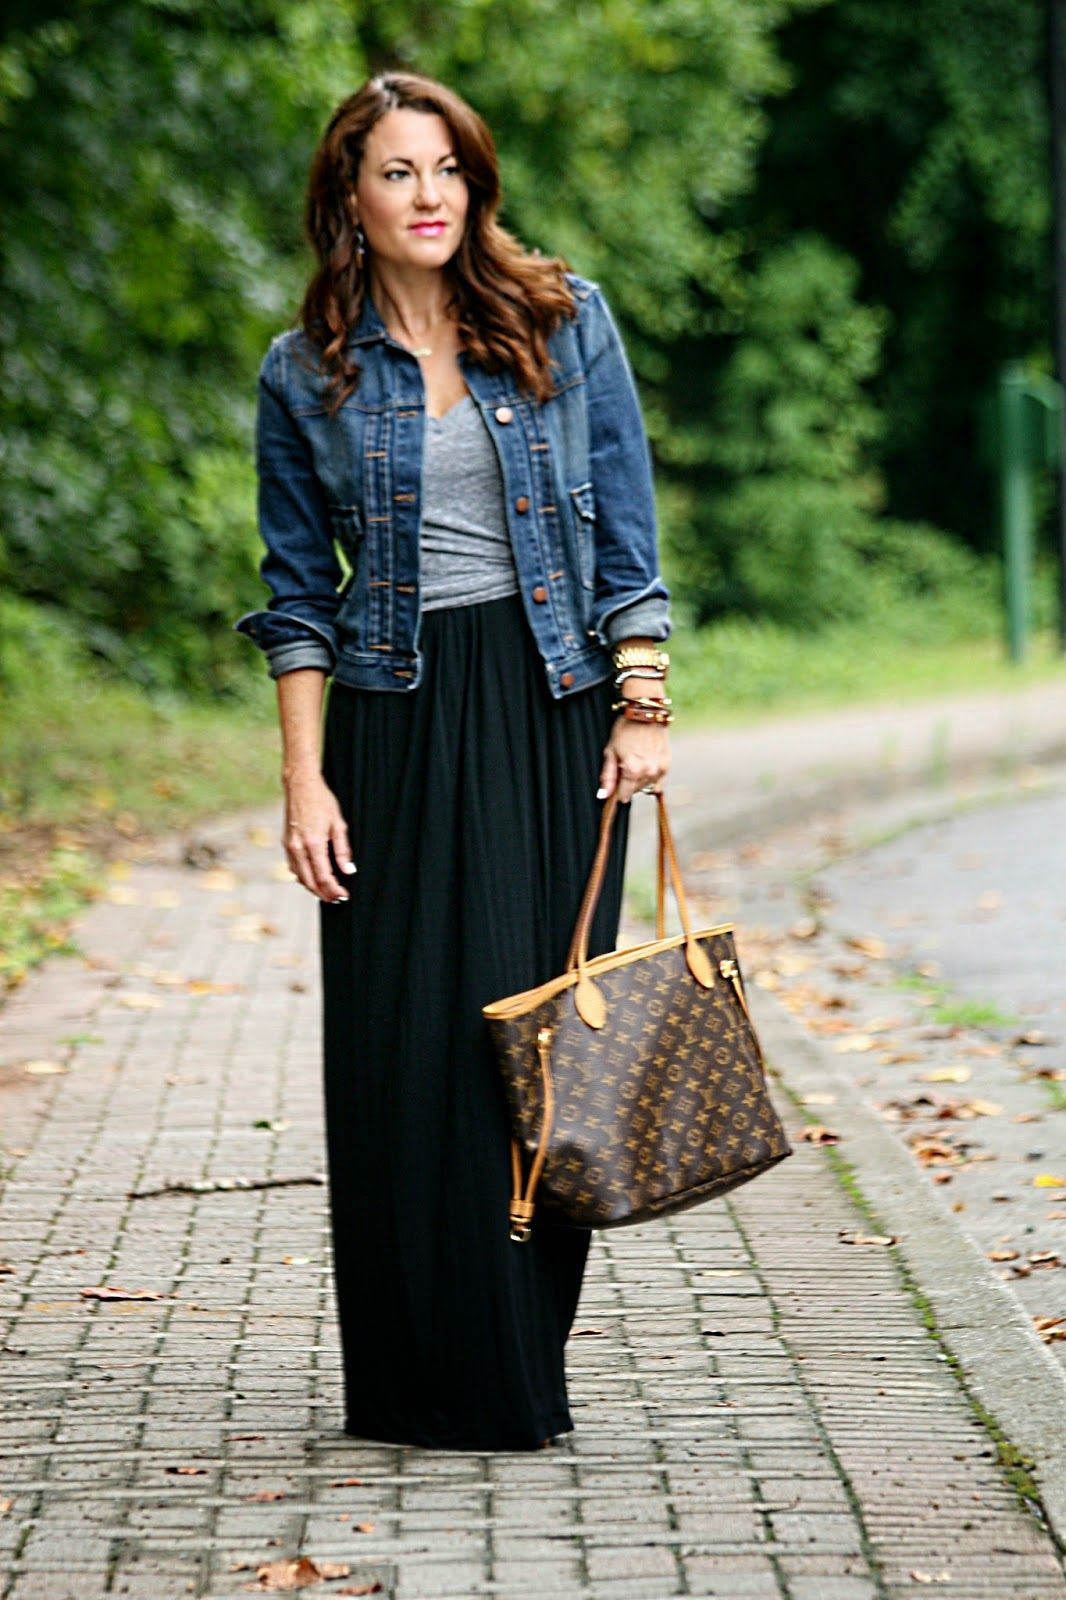 Black dress jean jacket - Gray T Shirt Denim Jacket Black Maxi Dress Casual Summer Look